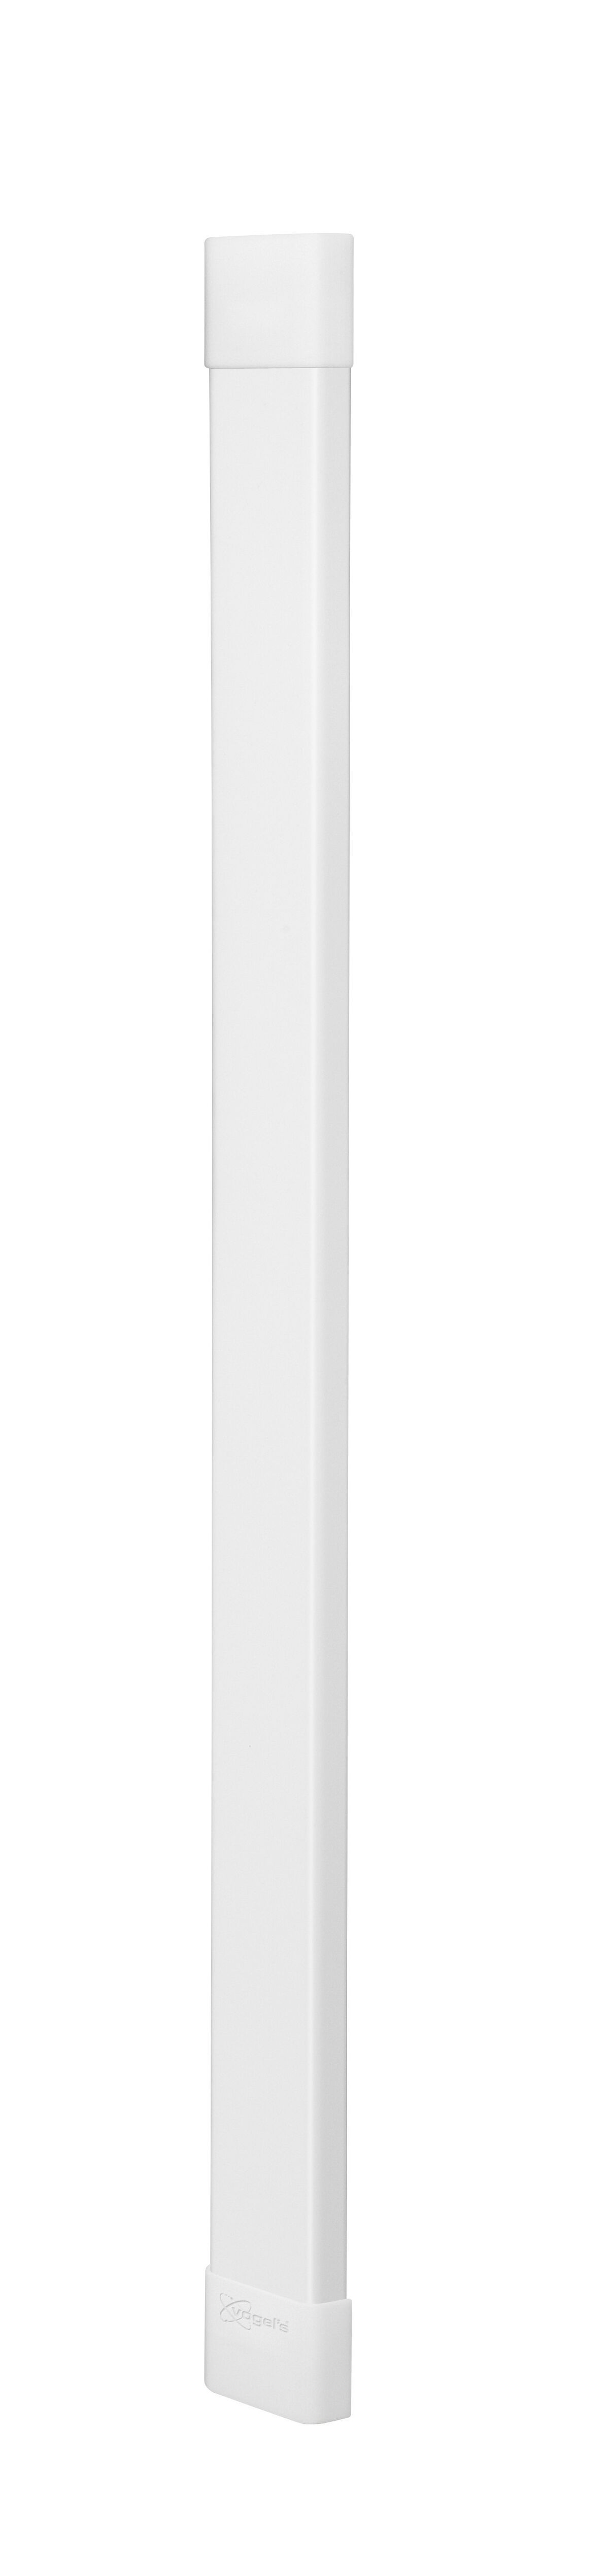 Vogel's CABLE 8 Cable Cover (white) - Max. number of cables to hold: Up to 8 cables - Length: 94 cm - Product